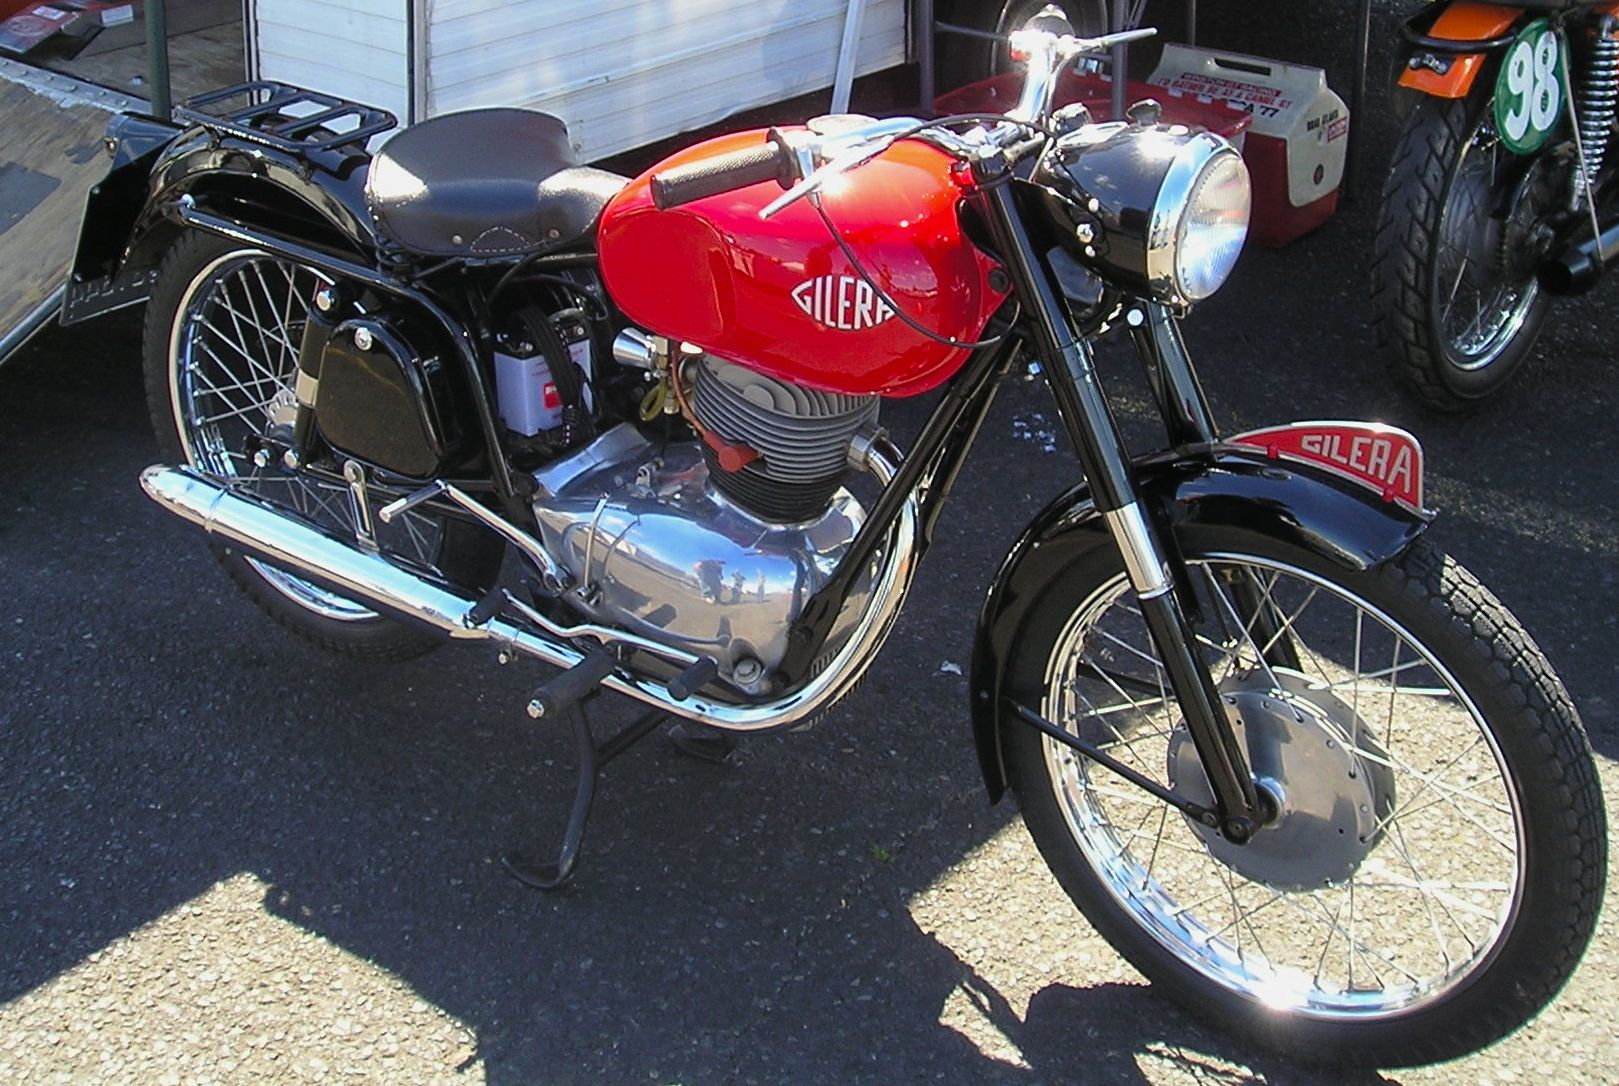 gilera 150 sport | motorcycle photo of the day